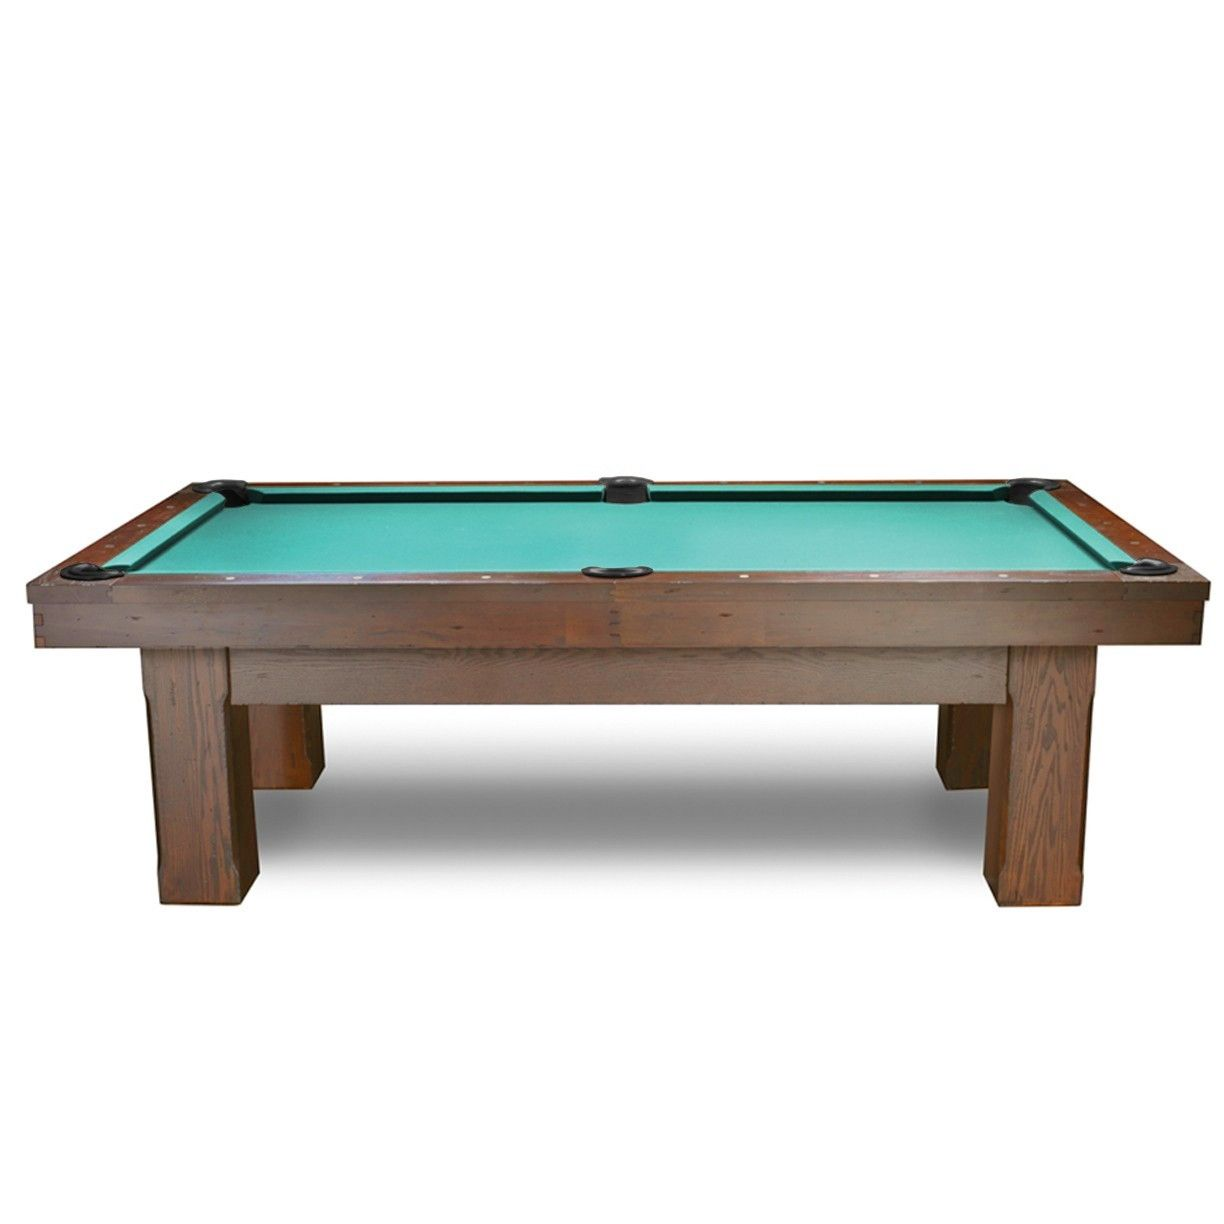 Montvale 8 Foot Pool Table With Free Deluxe Accessory Kit